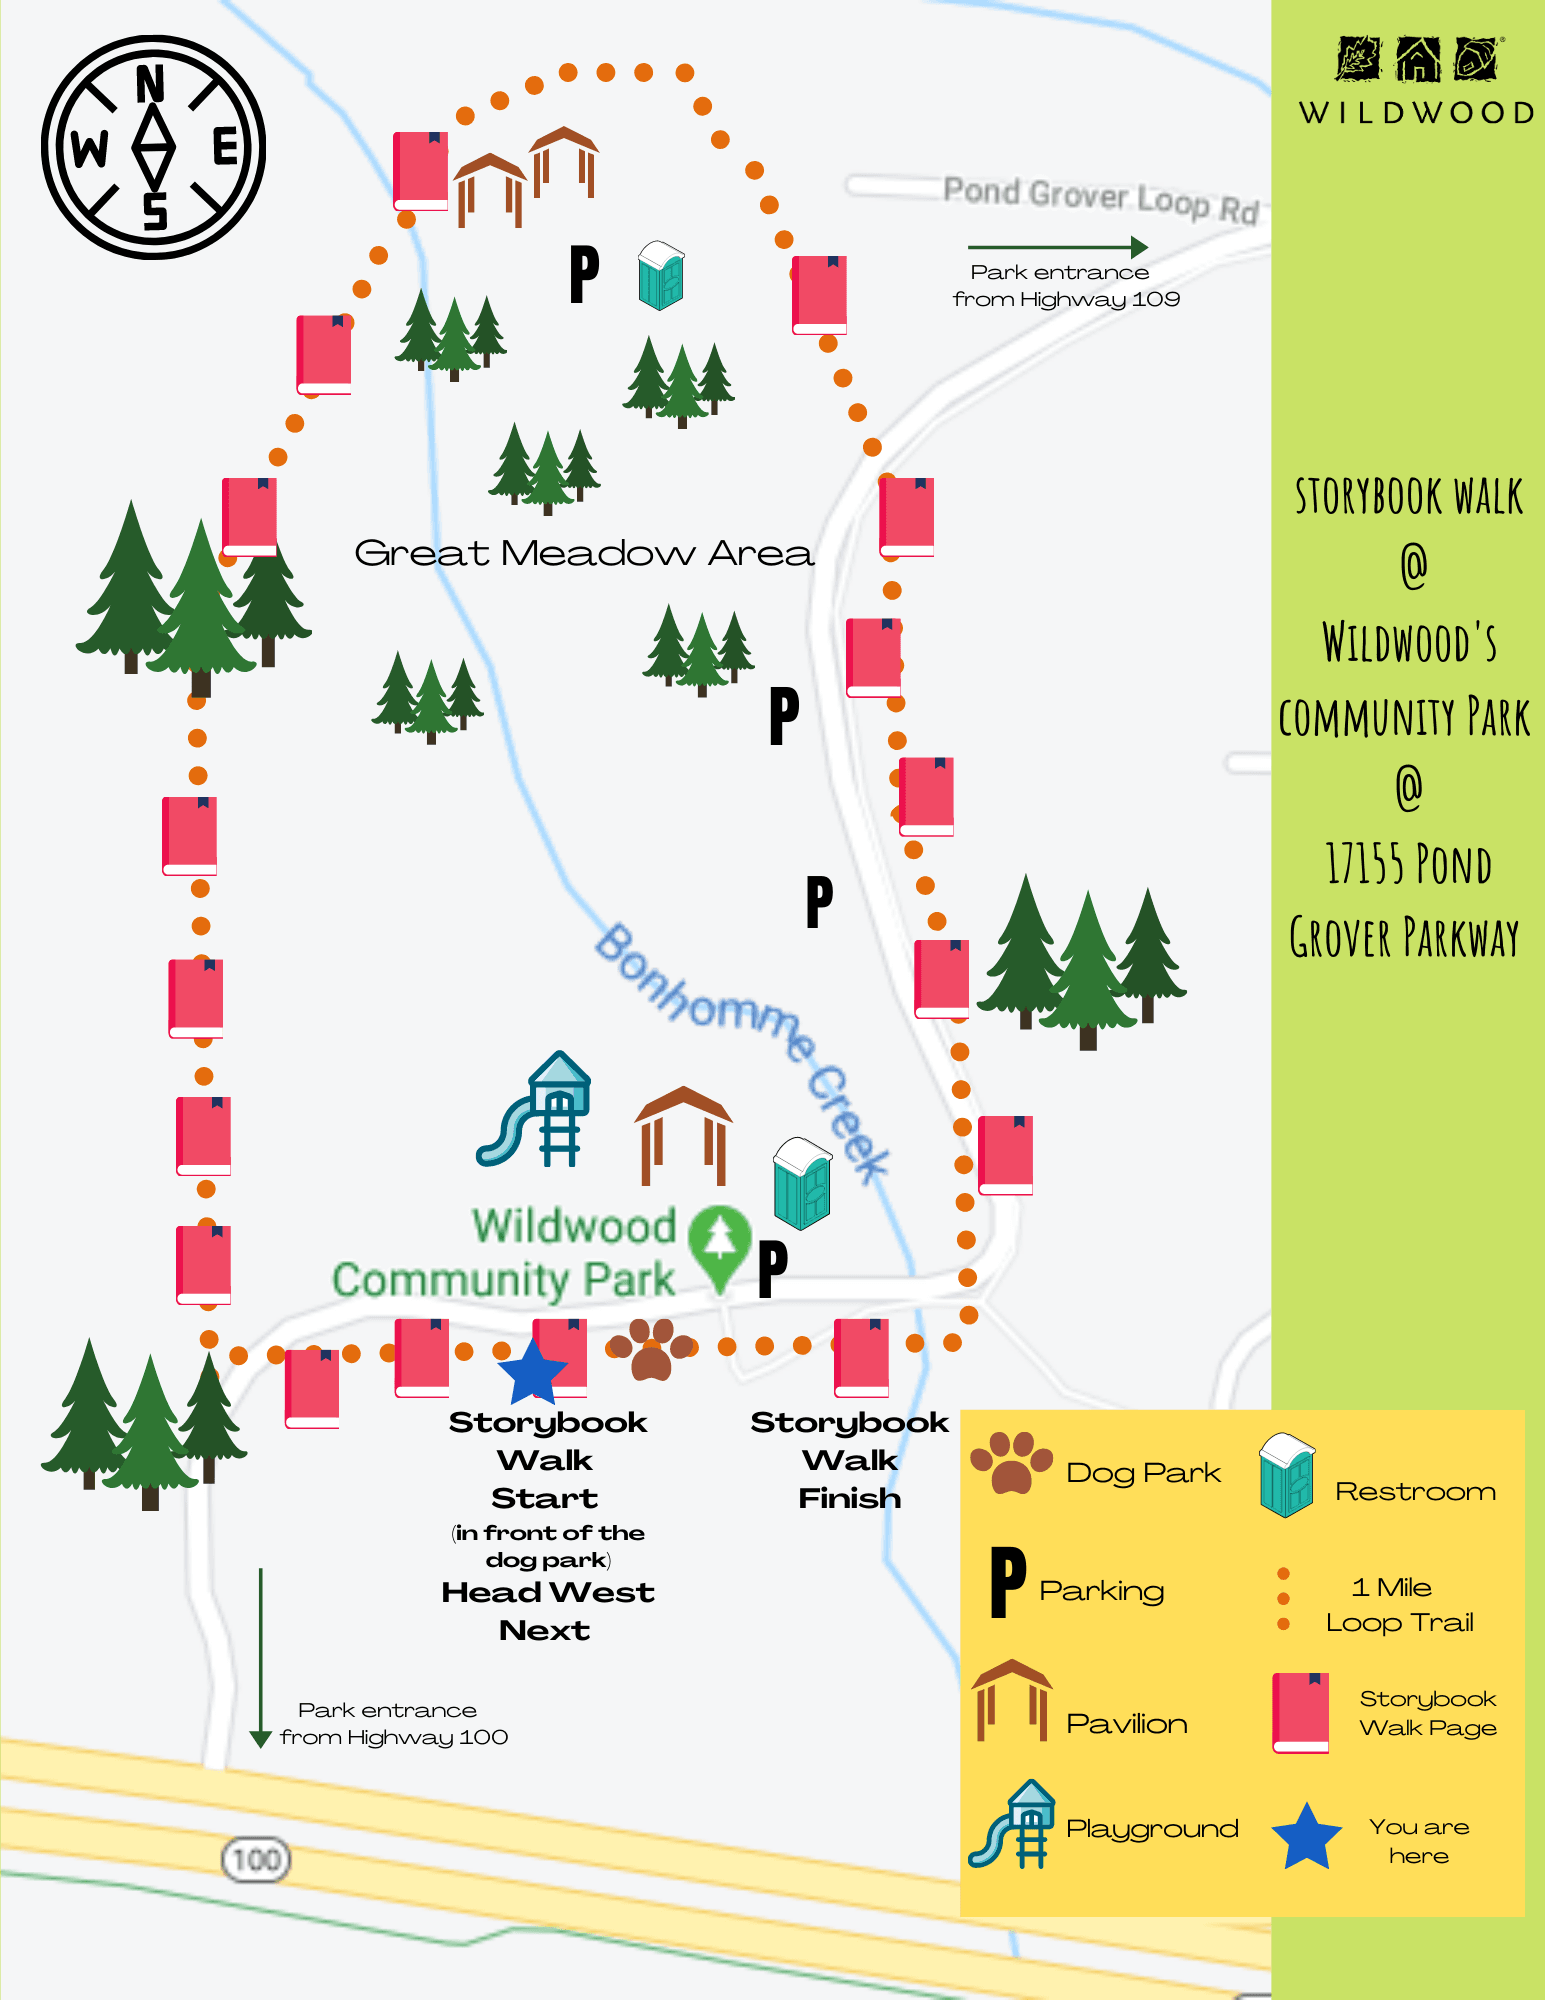 Story Book Walk Map